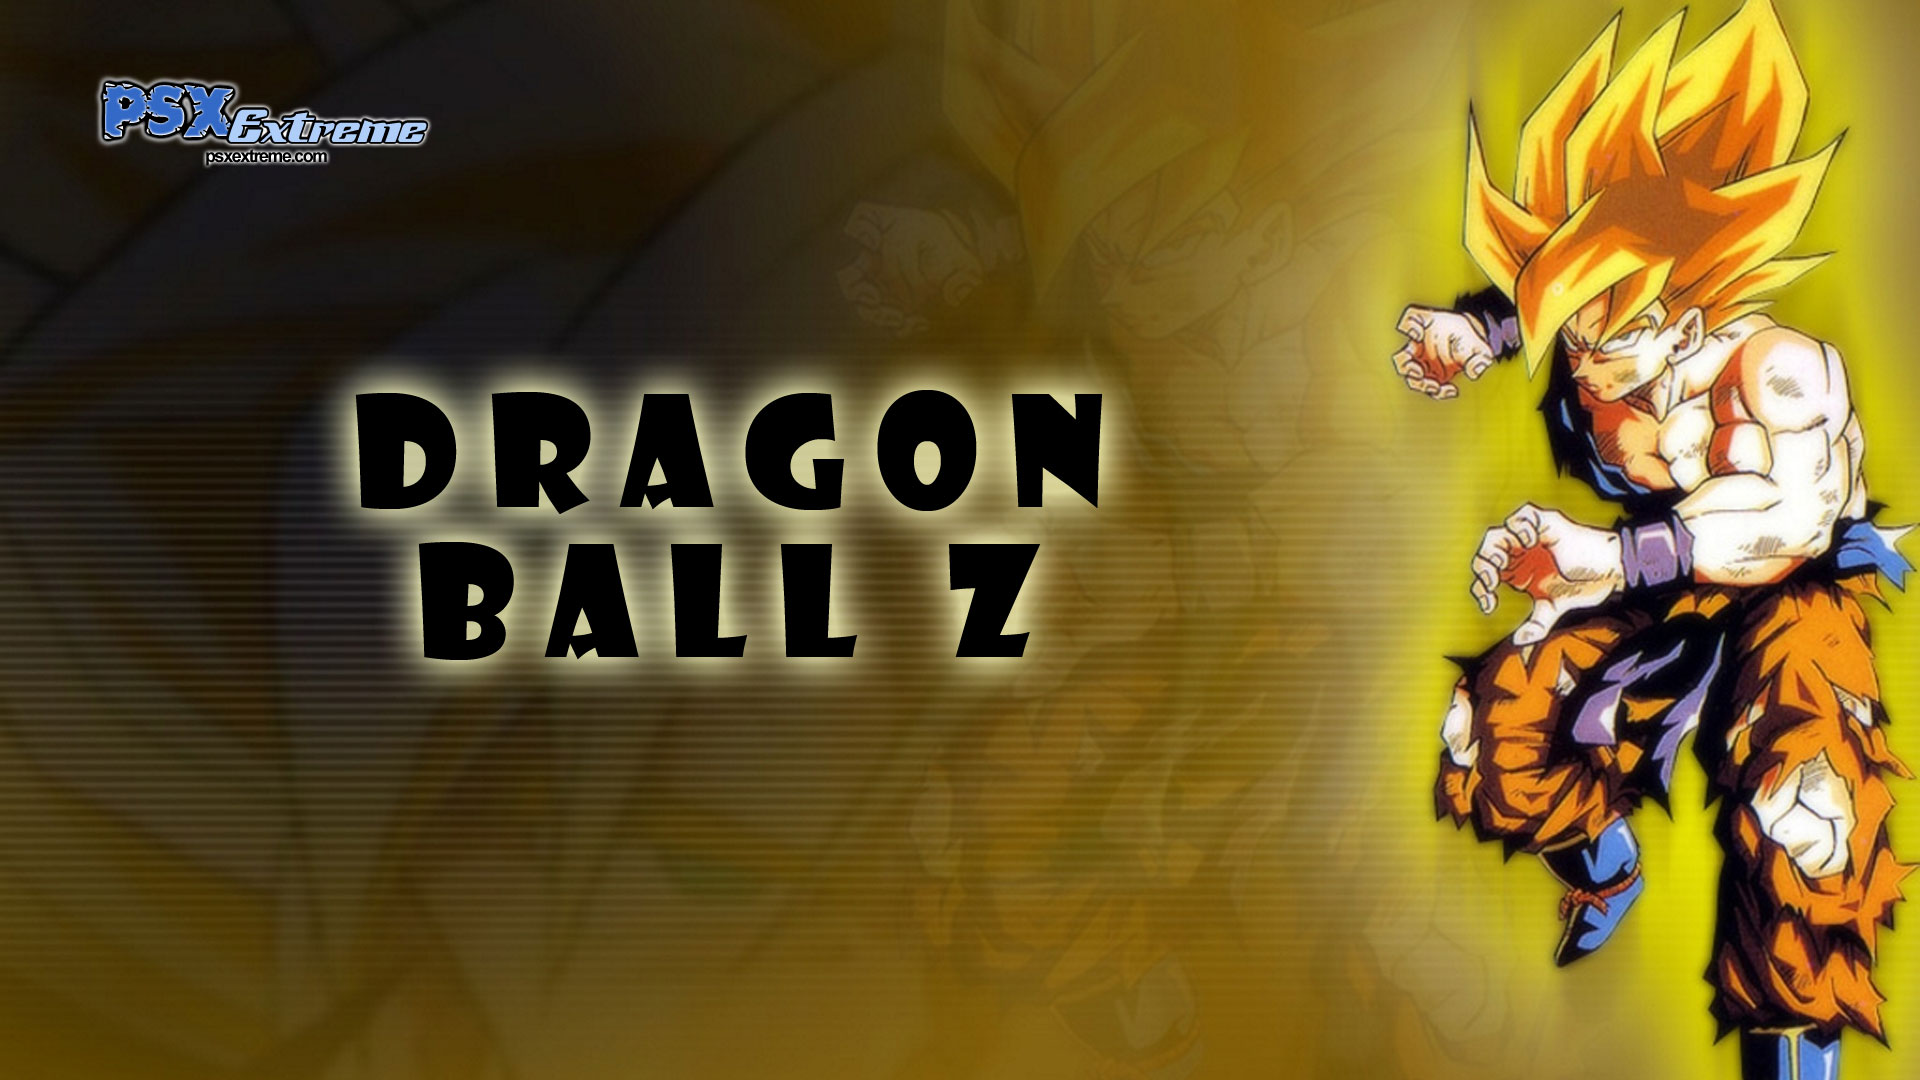 Dragon Ball Z Wallpapers PS3 Wallpaper Installation Directions